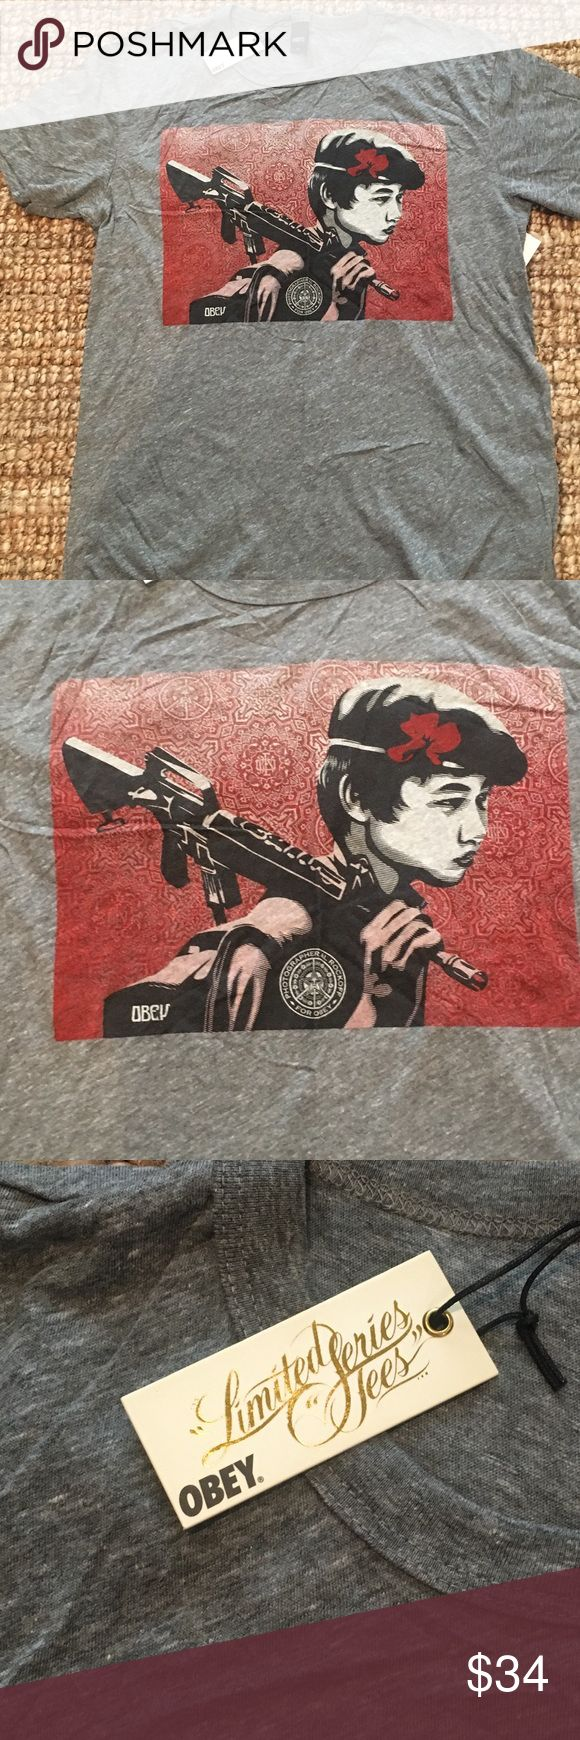 NWT Obey Limited Series Shepard Fairy Limited series Shepard Fairy Obey tee Obey Shirts Tees - Short Sleeve